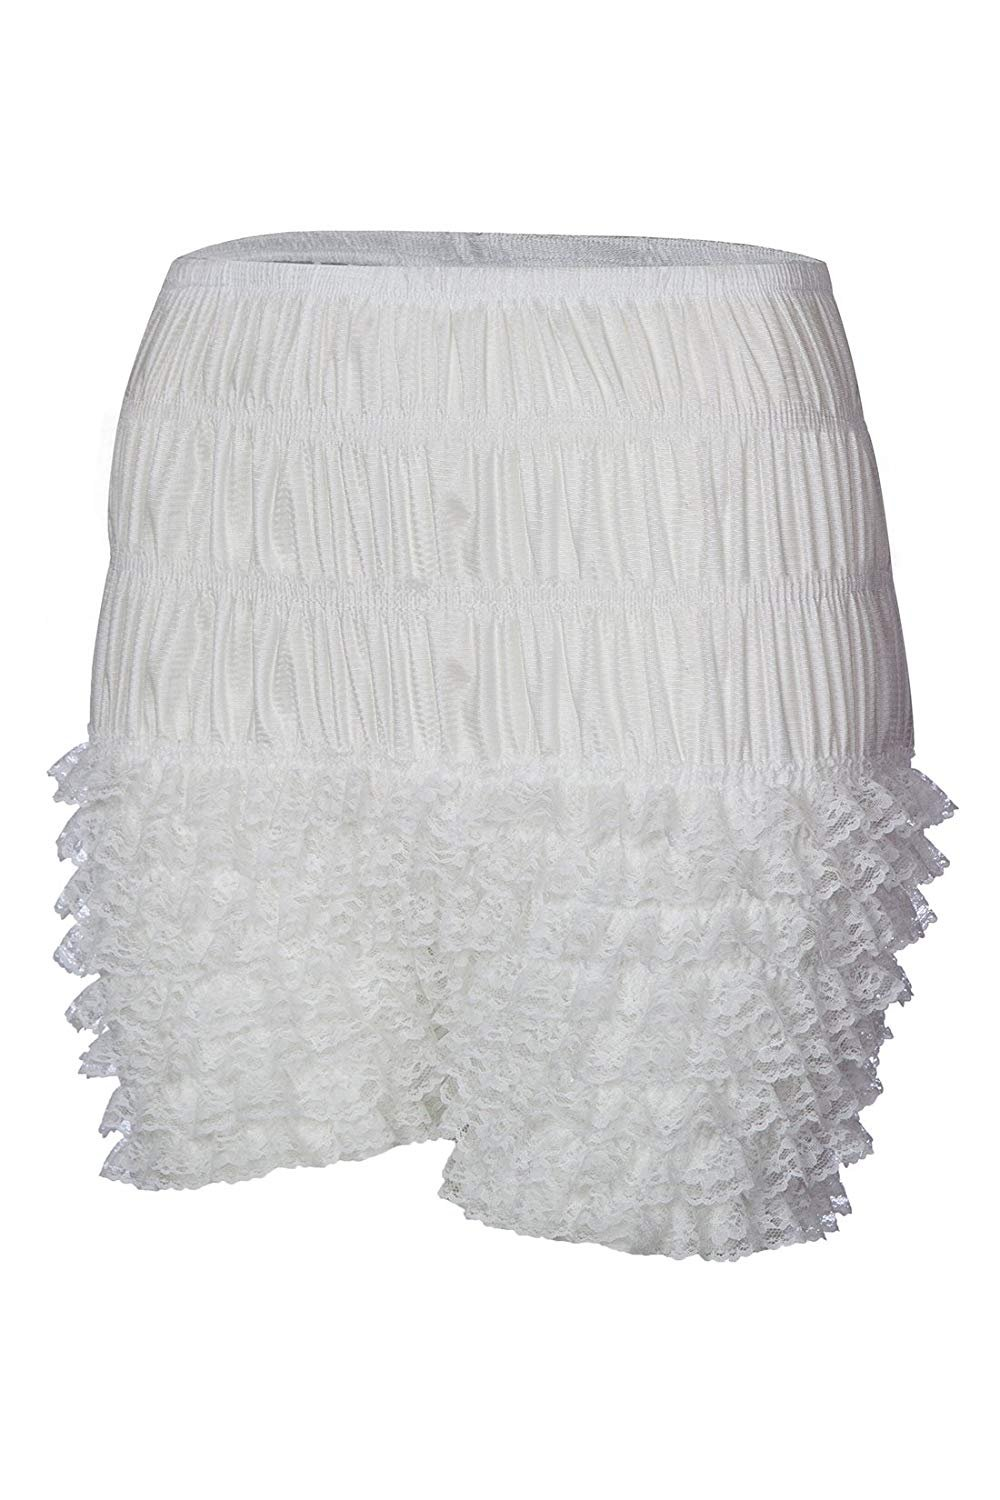 NOVAVOJO Women's Micromesh Lace Ruffle Tanga Shorts Sexy Ruffled Lace Panties Sissy Pettipant Dance Bloomers Frilly Shorts (White, Small)